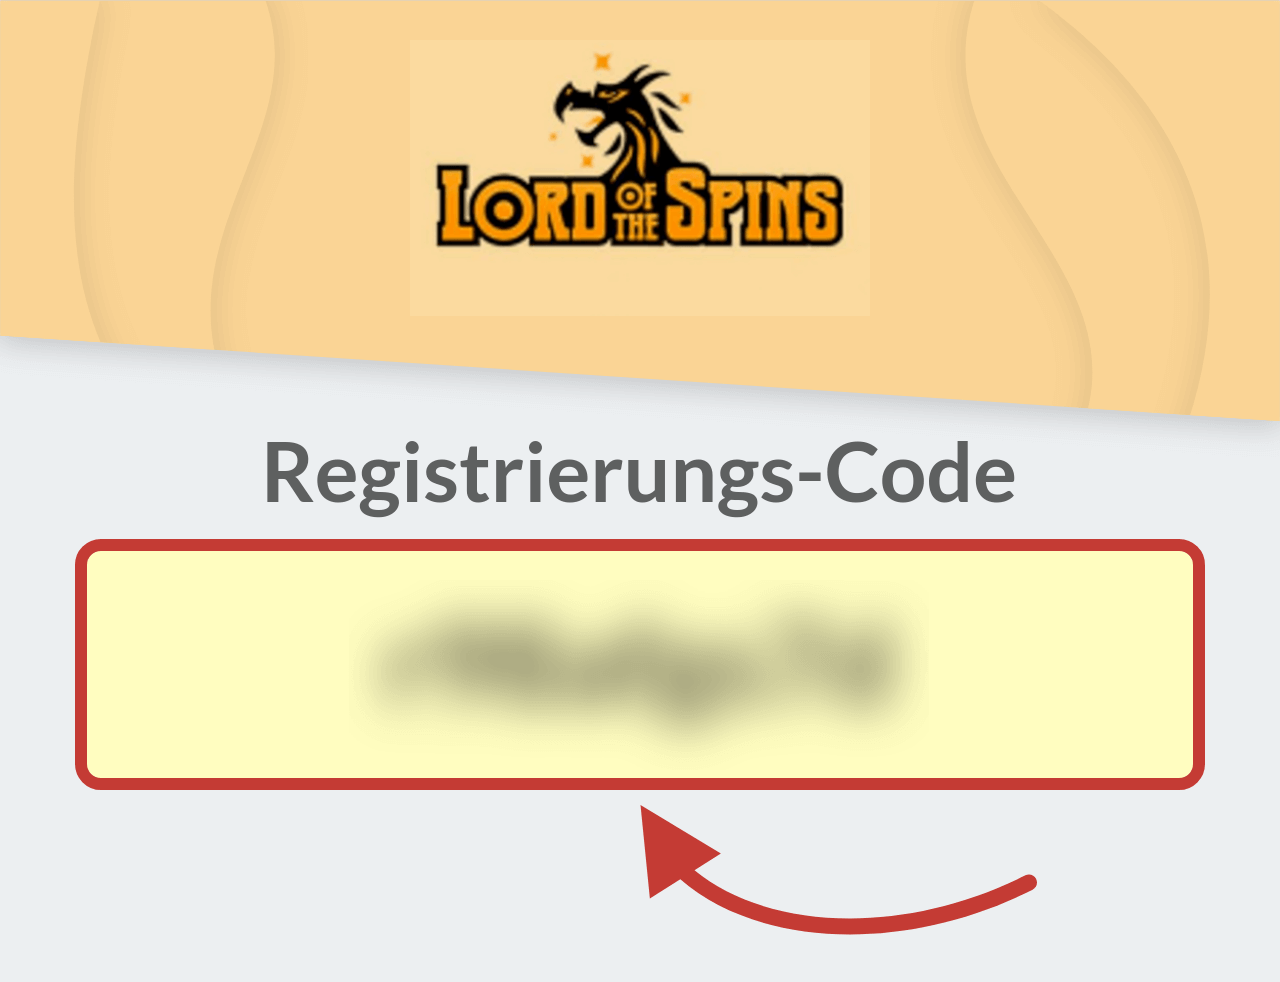 Lord of the Spins Registrierungs-Code